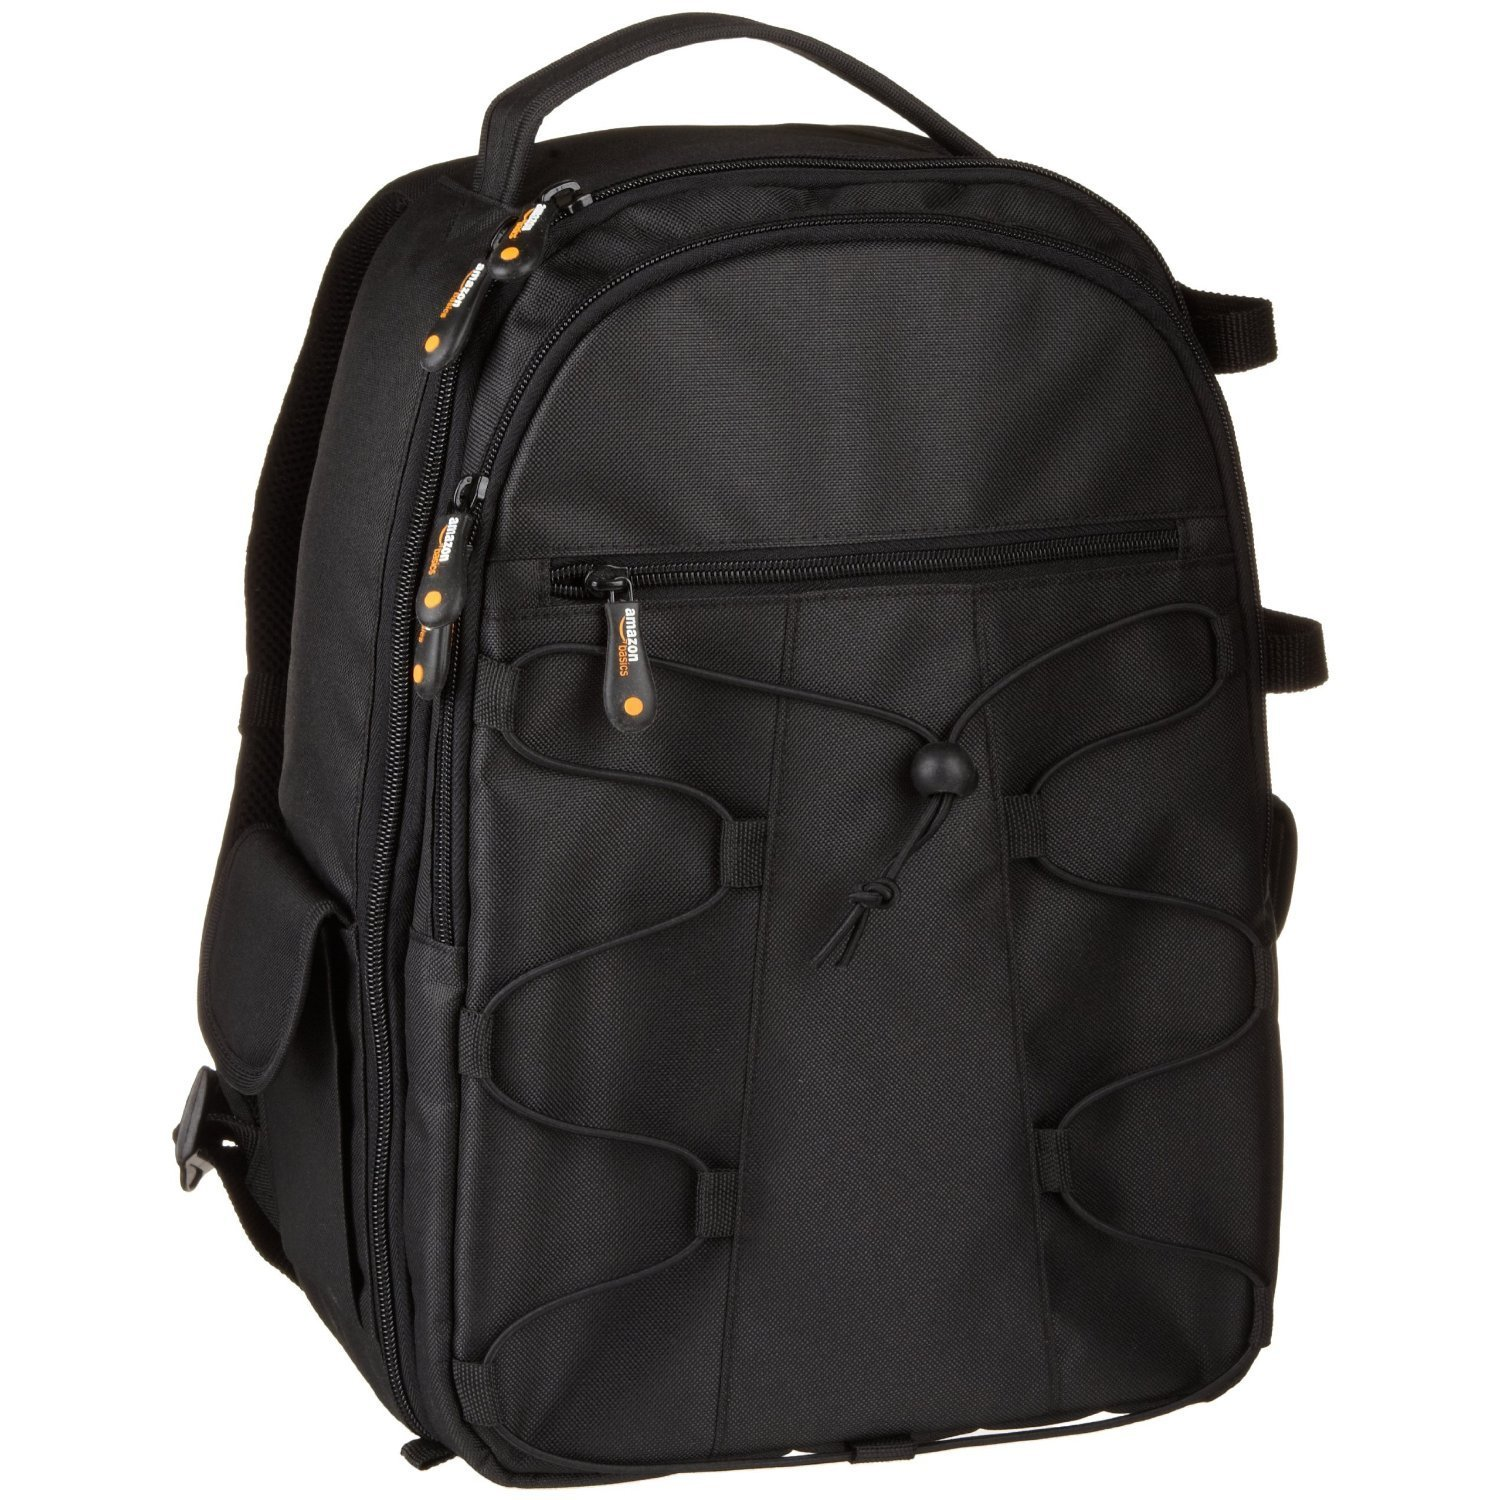 AmazonBasics Backpack for SLR/DSLR Camera and Accessories - 11 x 6 x 15 Inches, Black by AmazonBasics